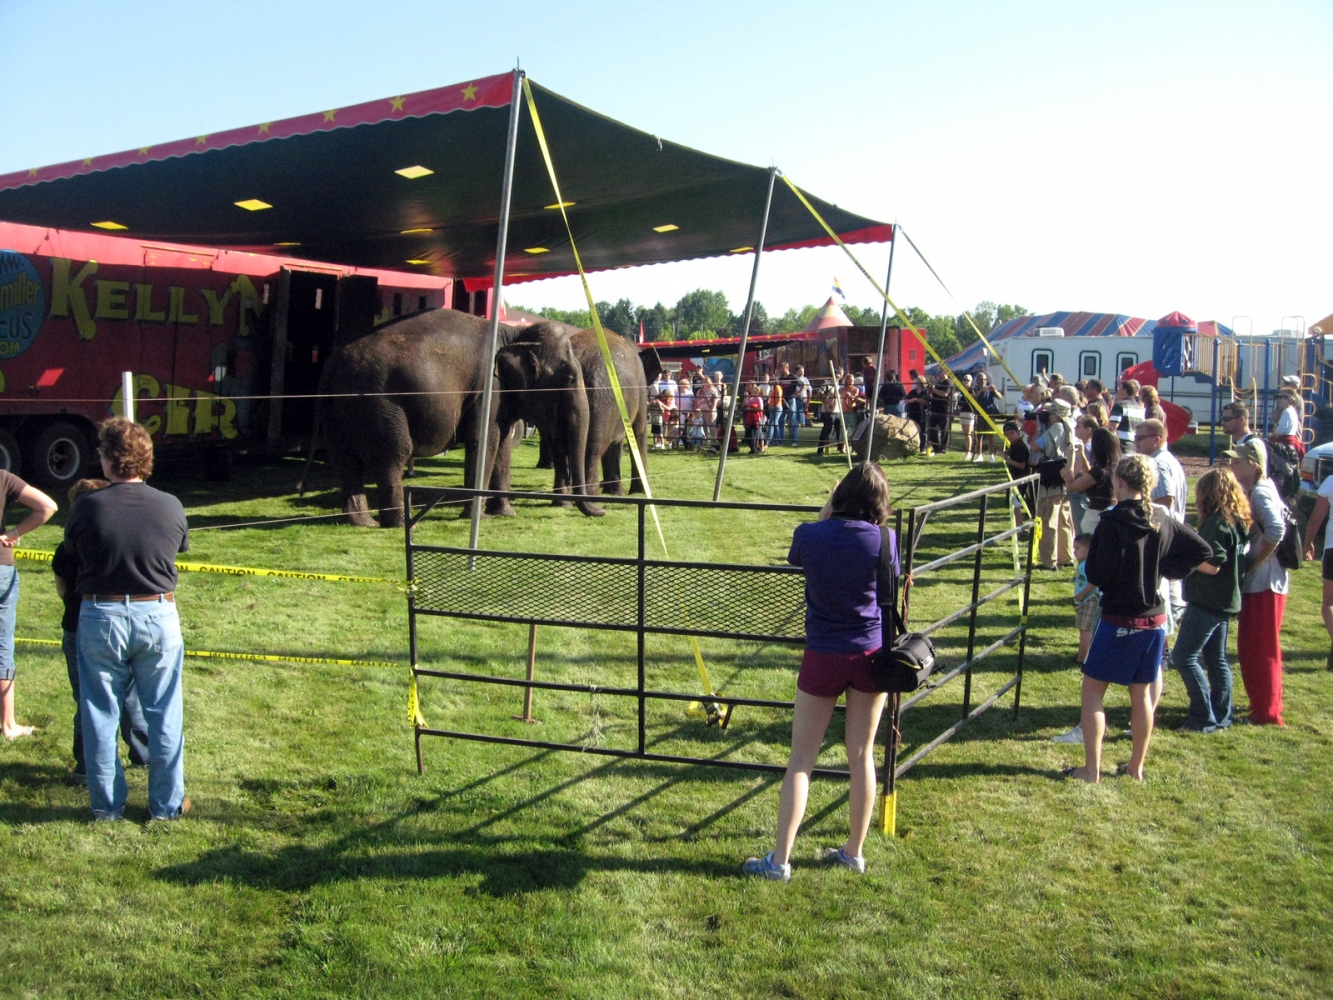 Art and Documentary Photography - Loading crowds elephants #2 8-1-09.jpg